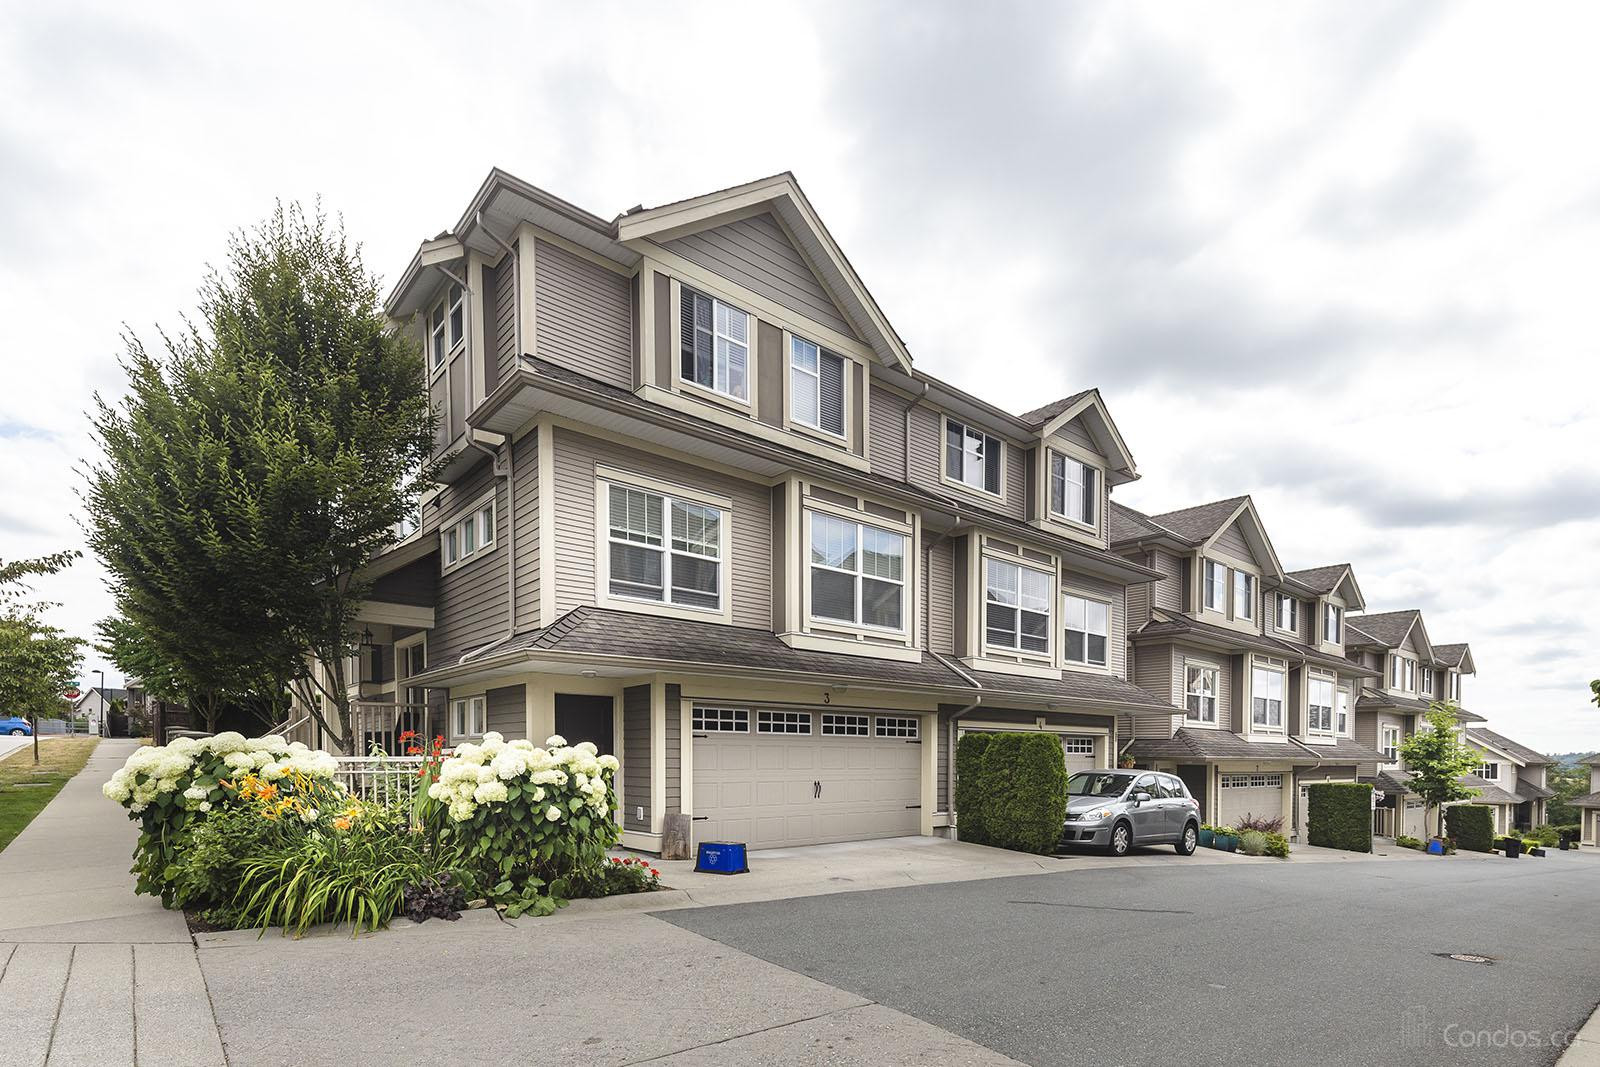 Ebbens Crossing at 7177 179 St, Surrey 1